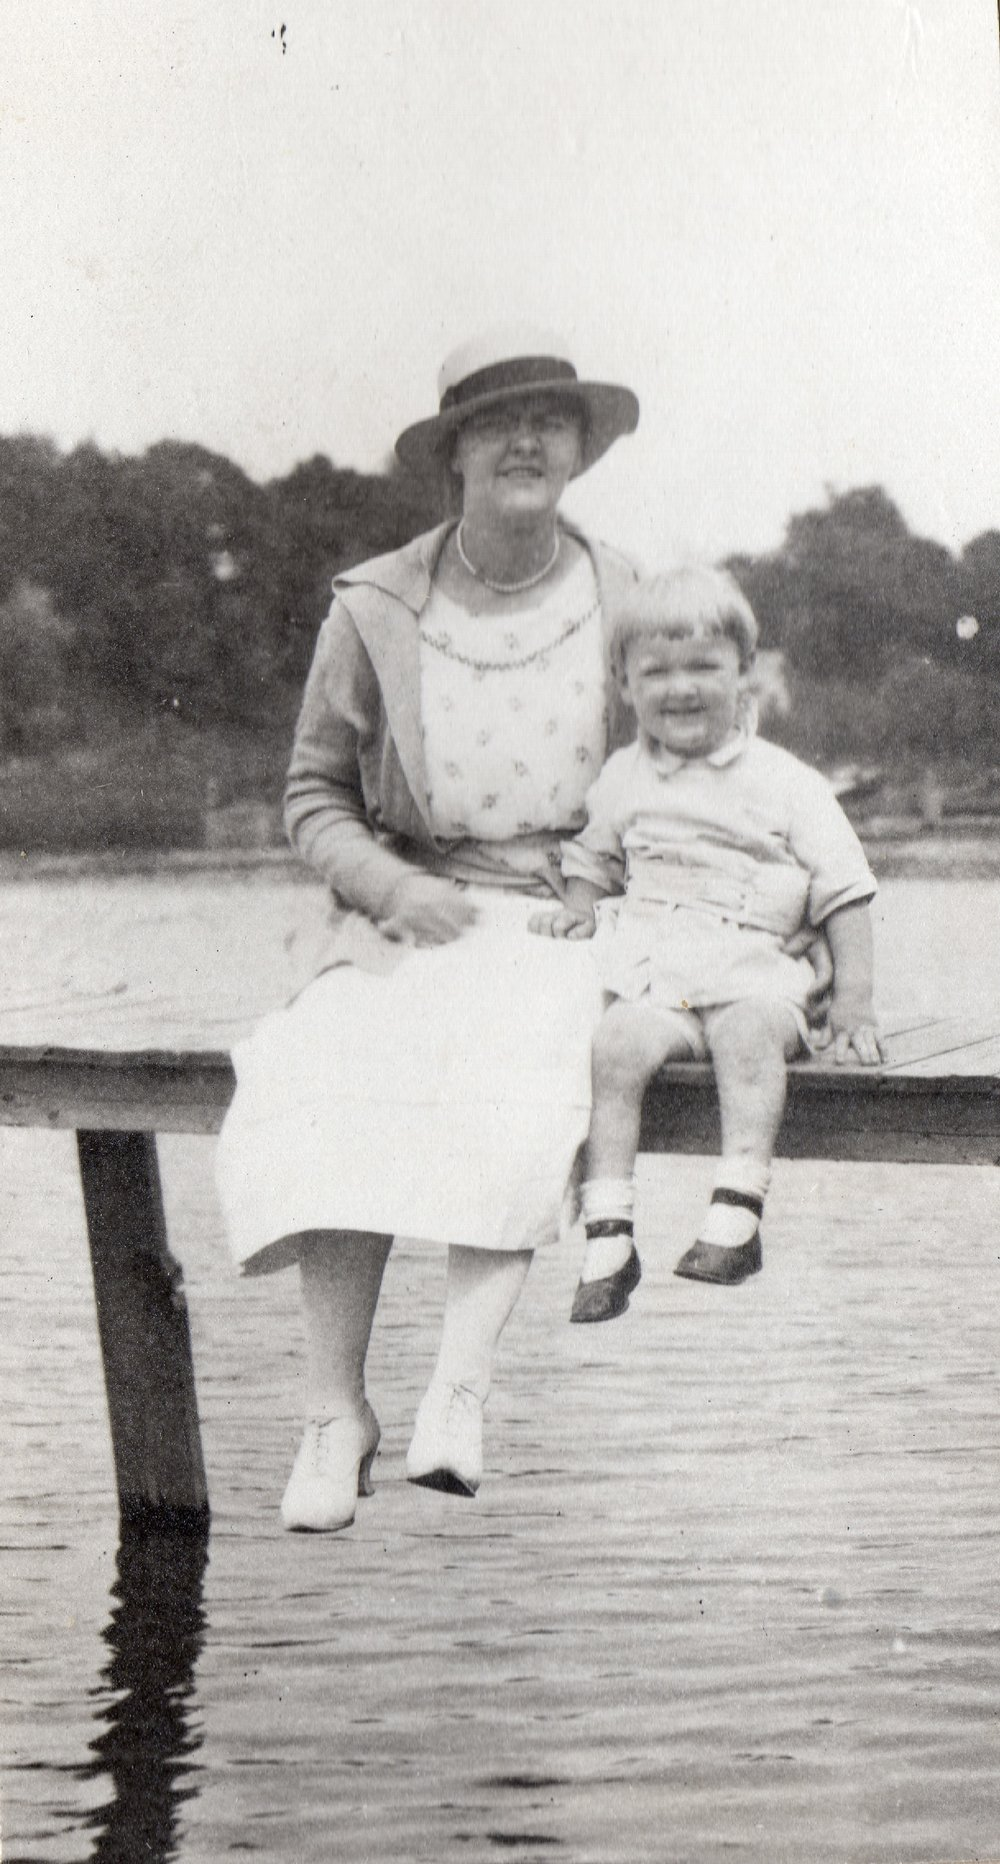 Ruth & her nephew (my grandfather)